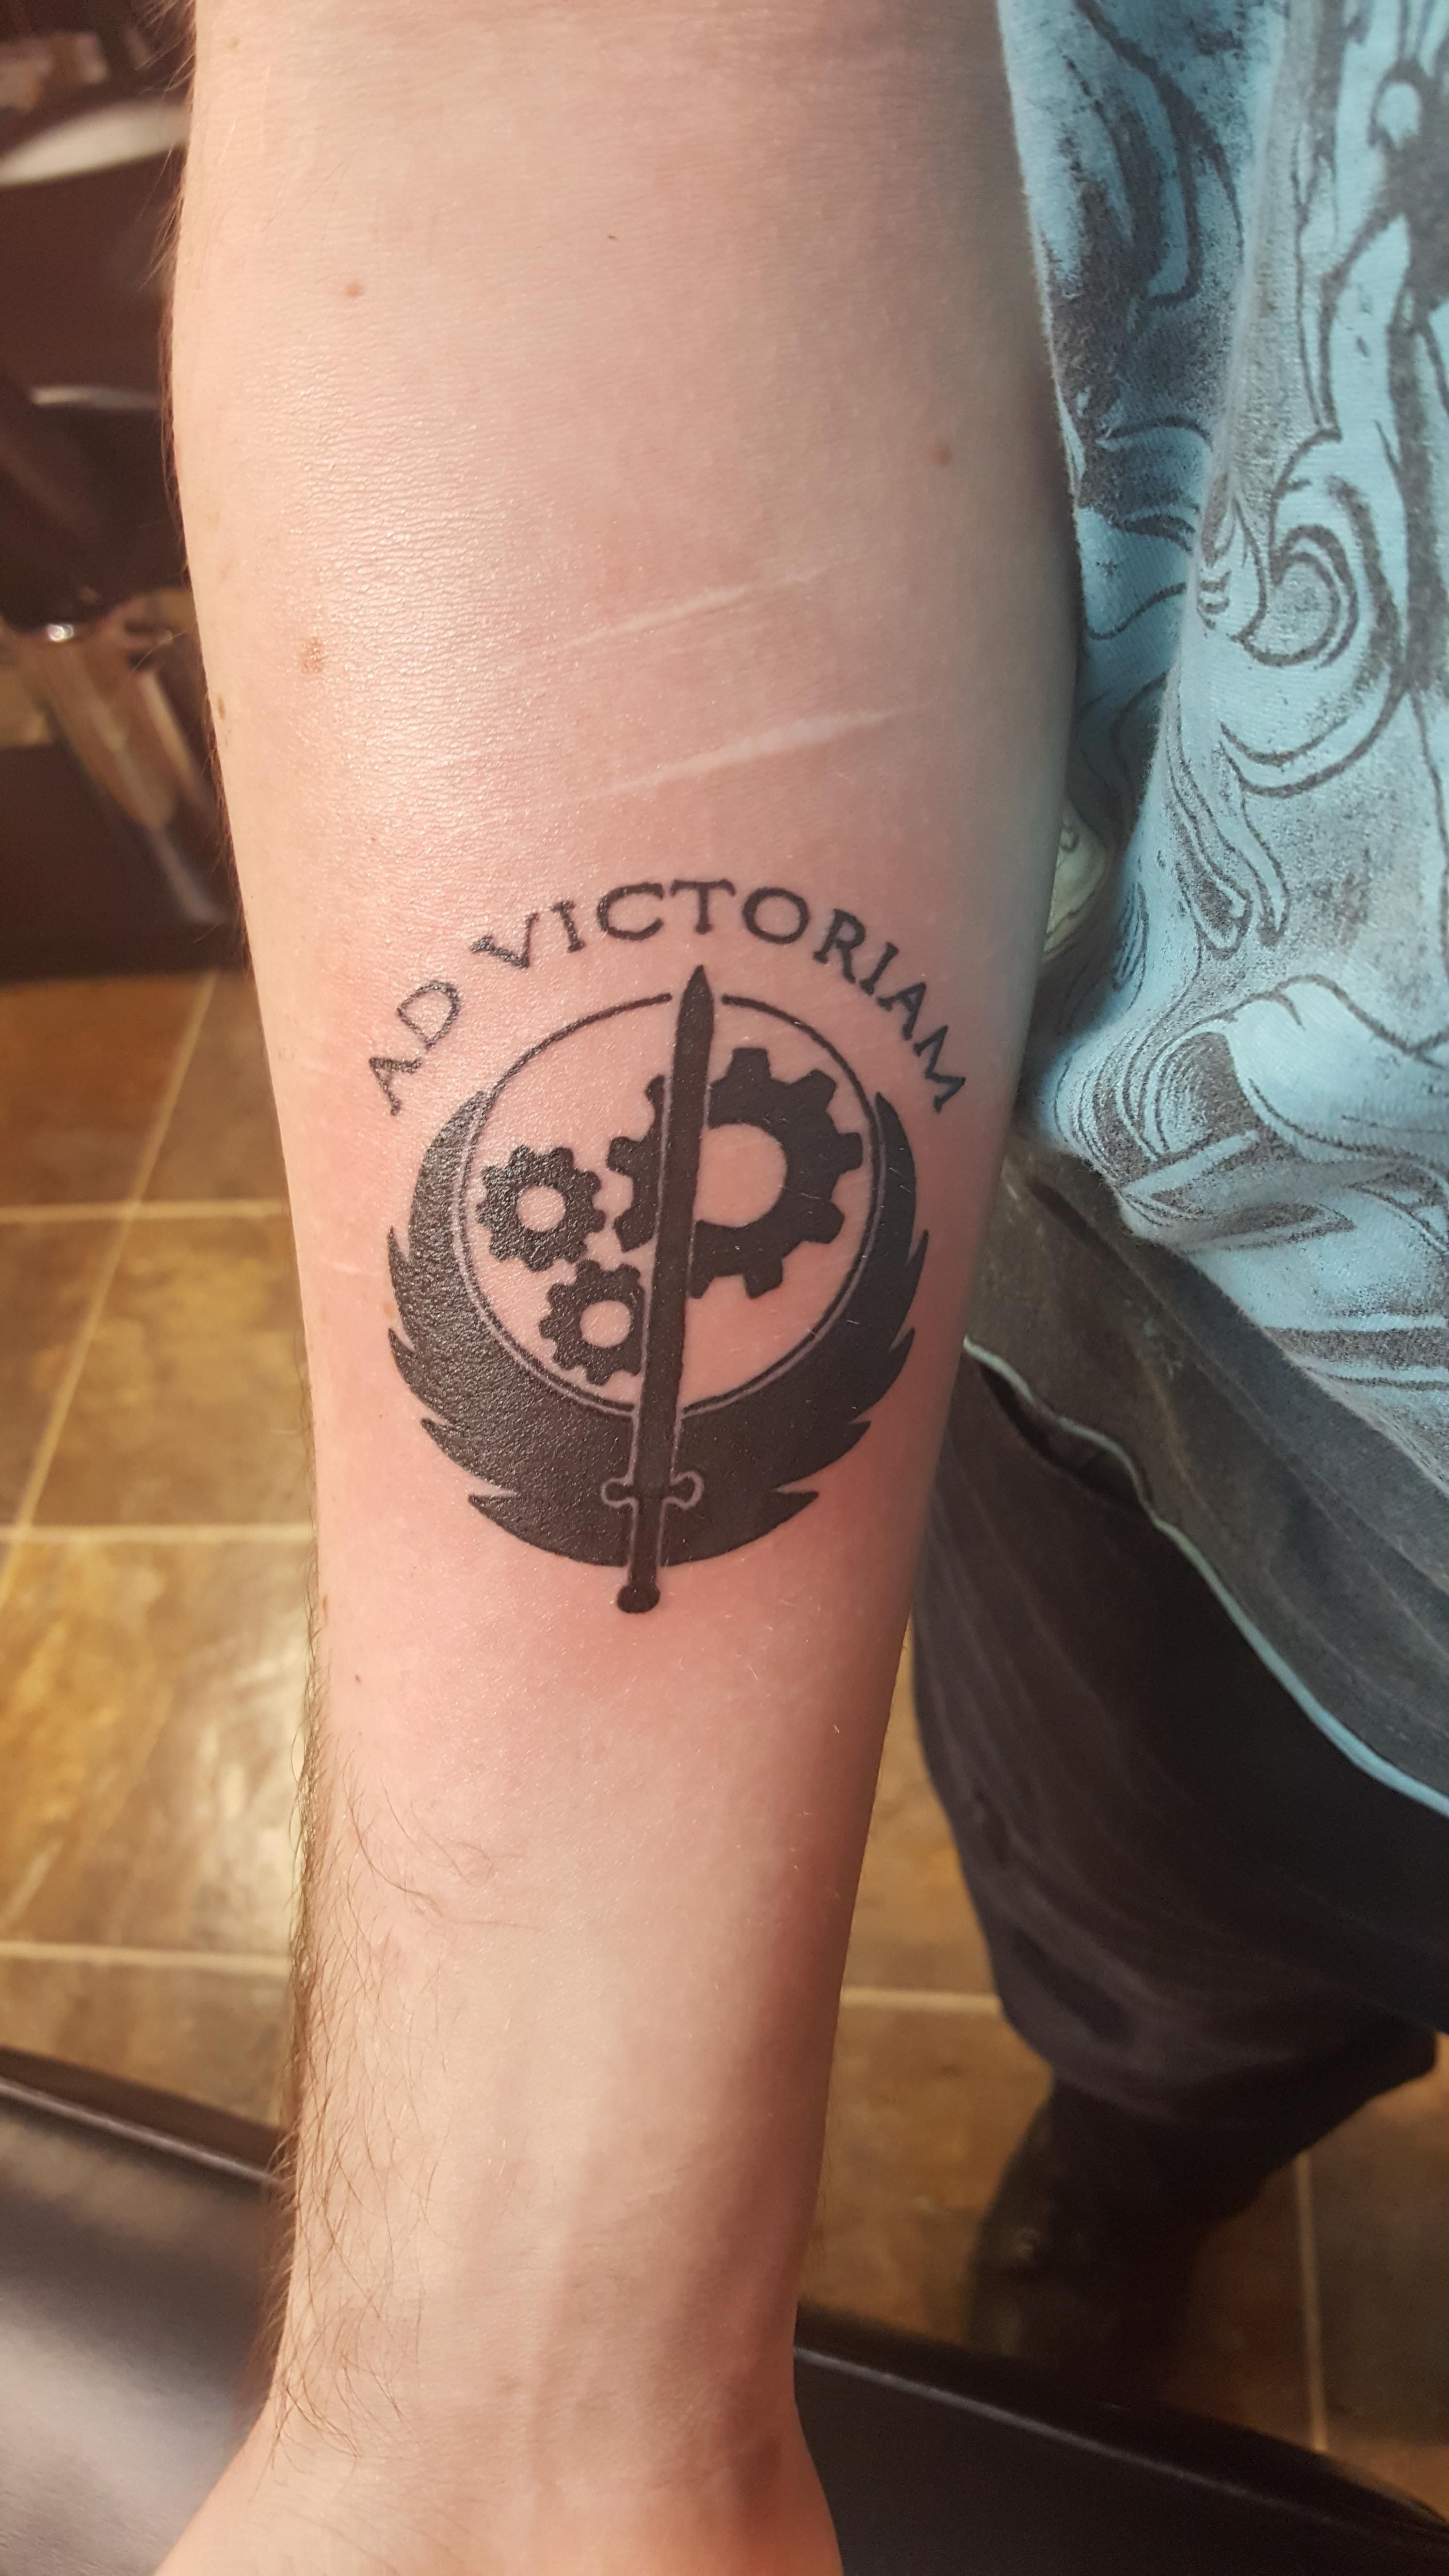 Decided to get a Fallout tattoo representing my favorite ...